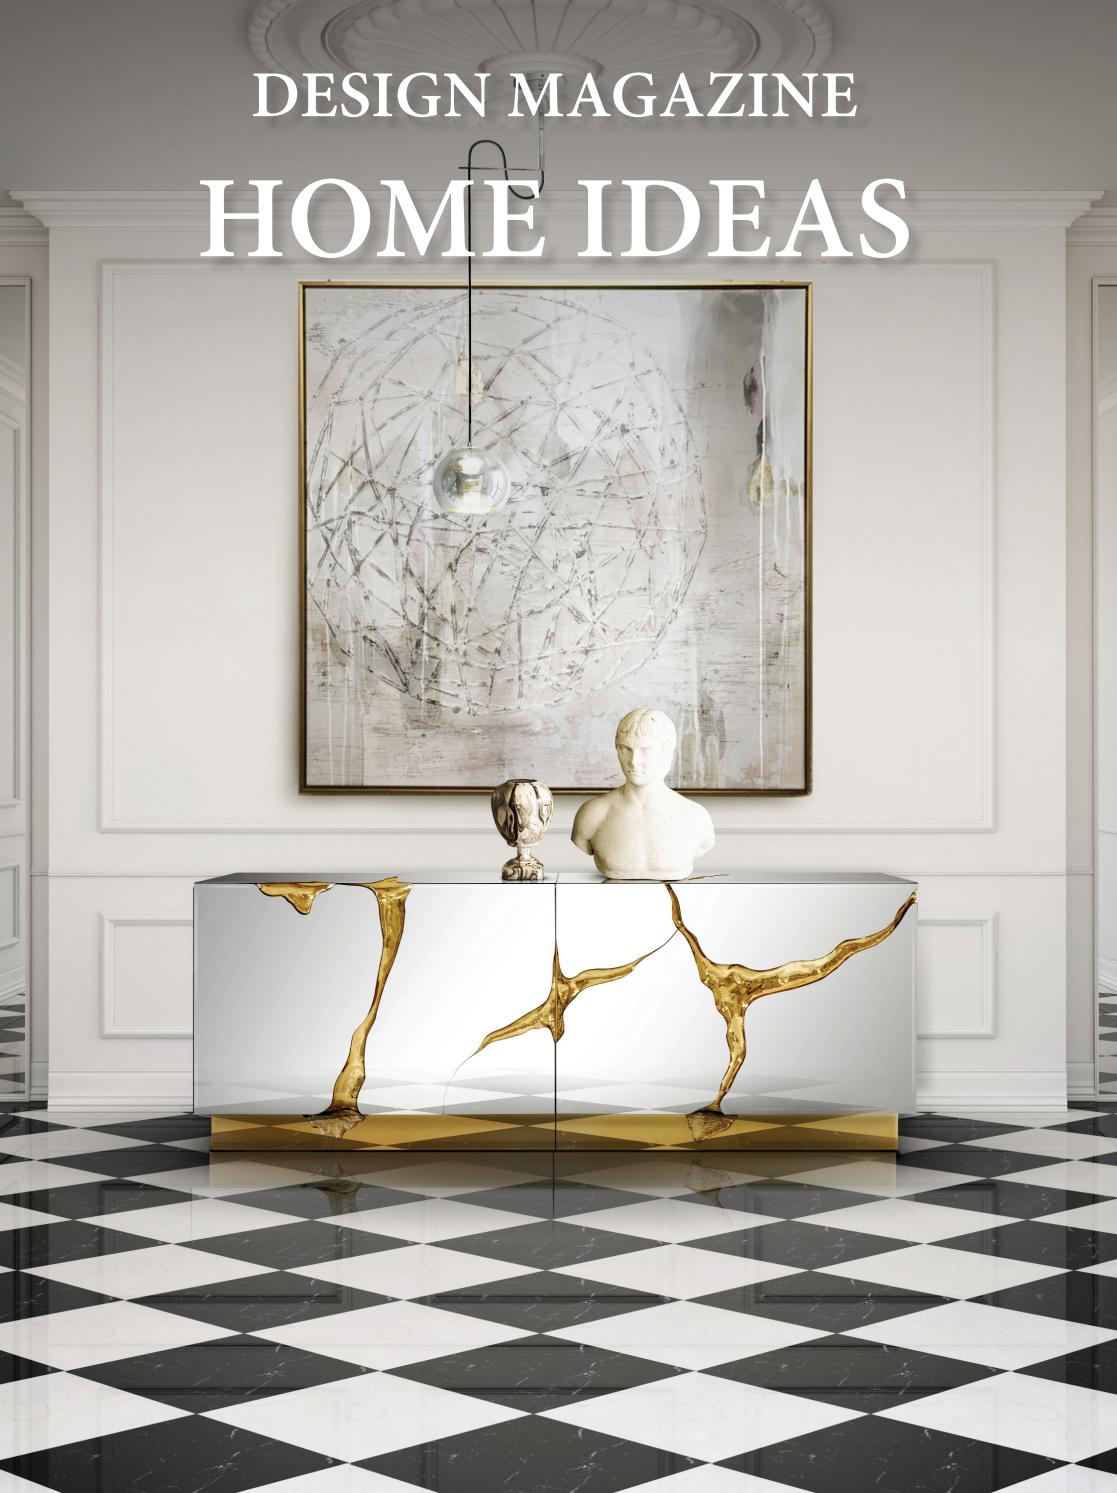 Design magazine home ideas by covet house issuu for Interior design magazine